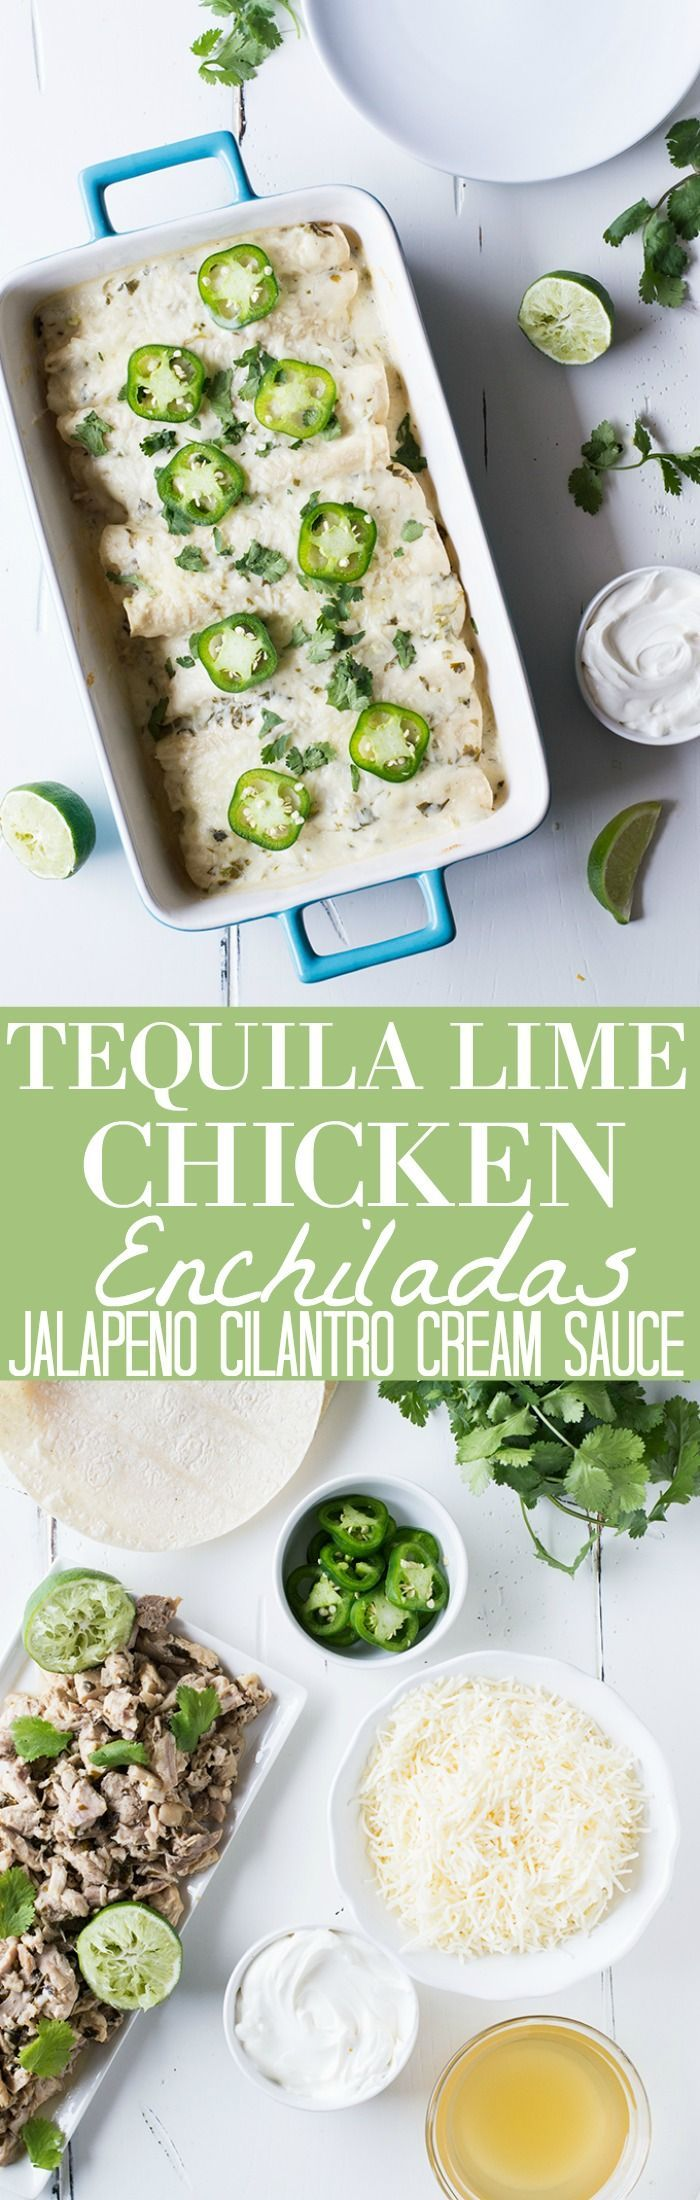 Tequila Lime Chicken Enchiladas with a Creamy Jalapeño Cilantro Sauce.  These enchiladas are SO flavorful!  Full of tender tequila lime chicken, cheese, and topped with a cheesy, creamy jalapeño cilantro sauce.   #PourLoveInn @collegeinnbroth #ad